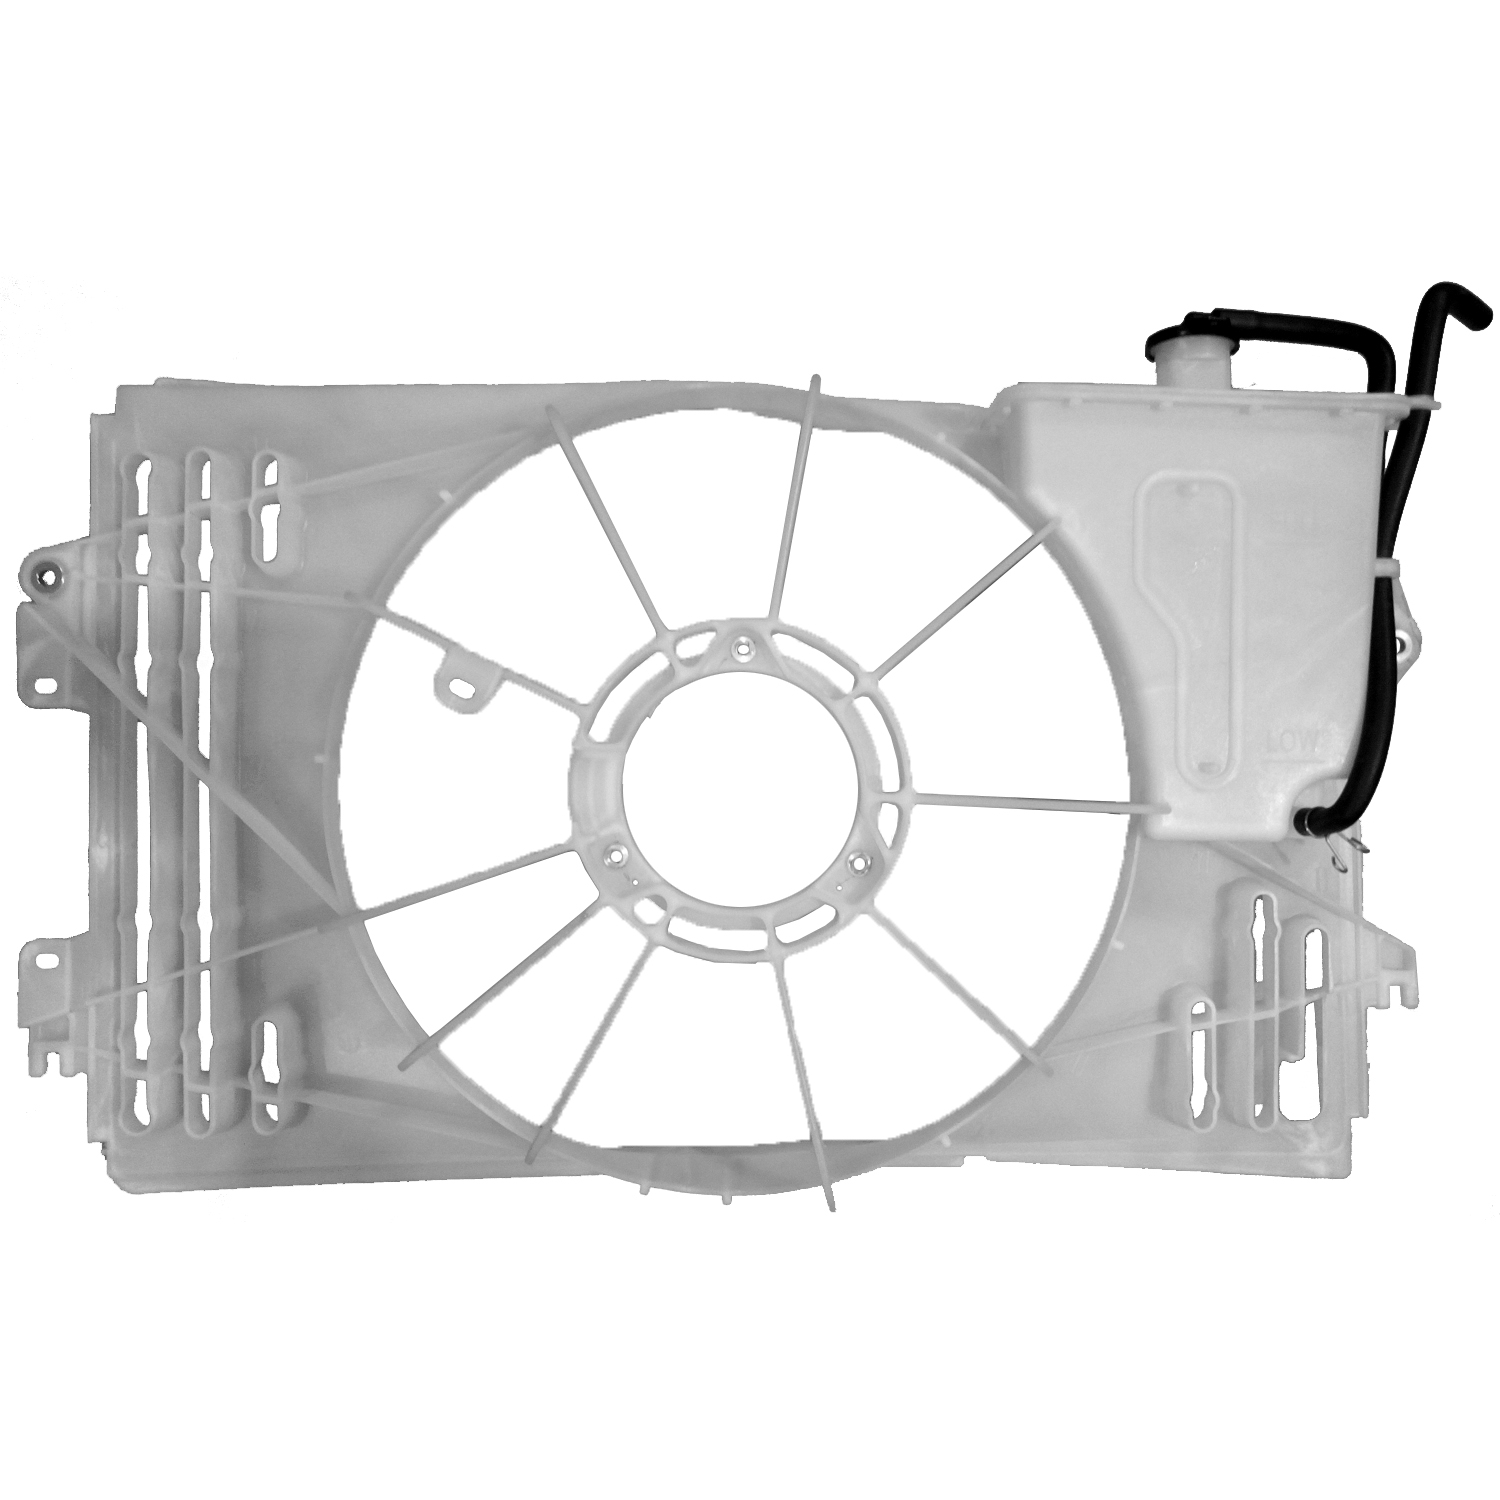 CPP Front Radiator Fan Shroud for 03-08 Toyota Corolla TO3110134